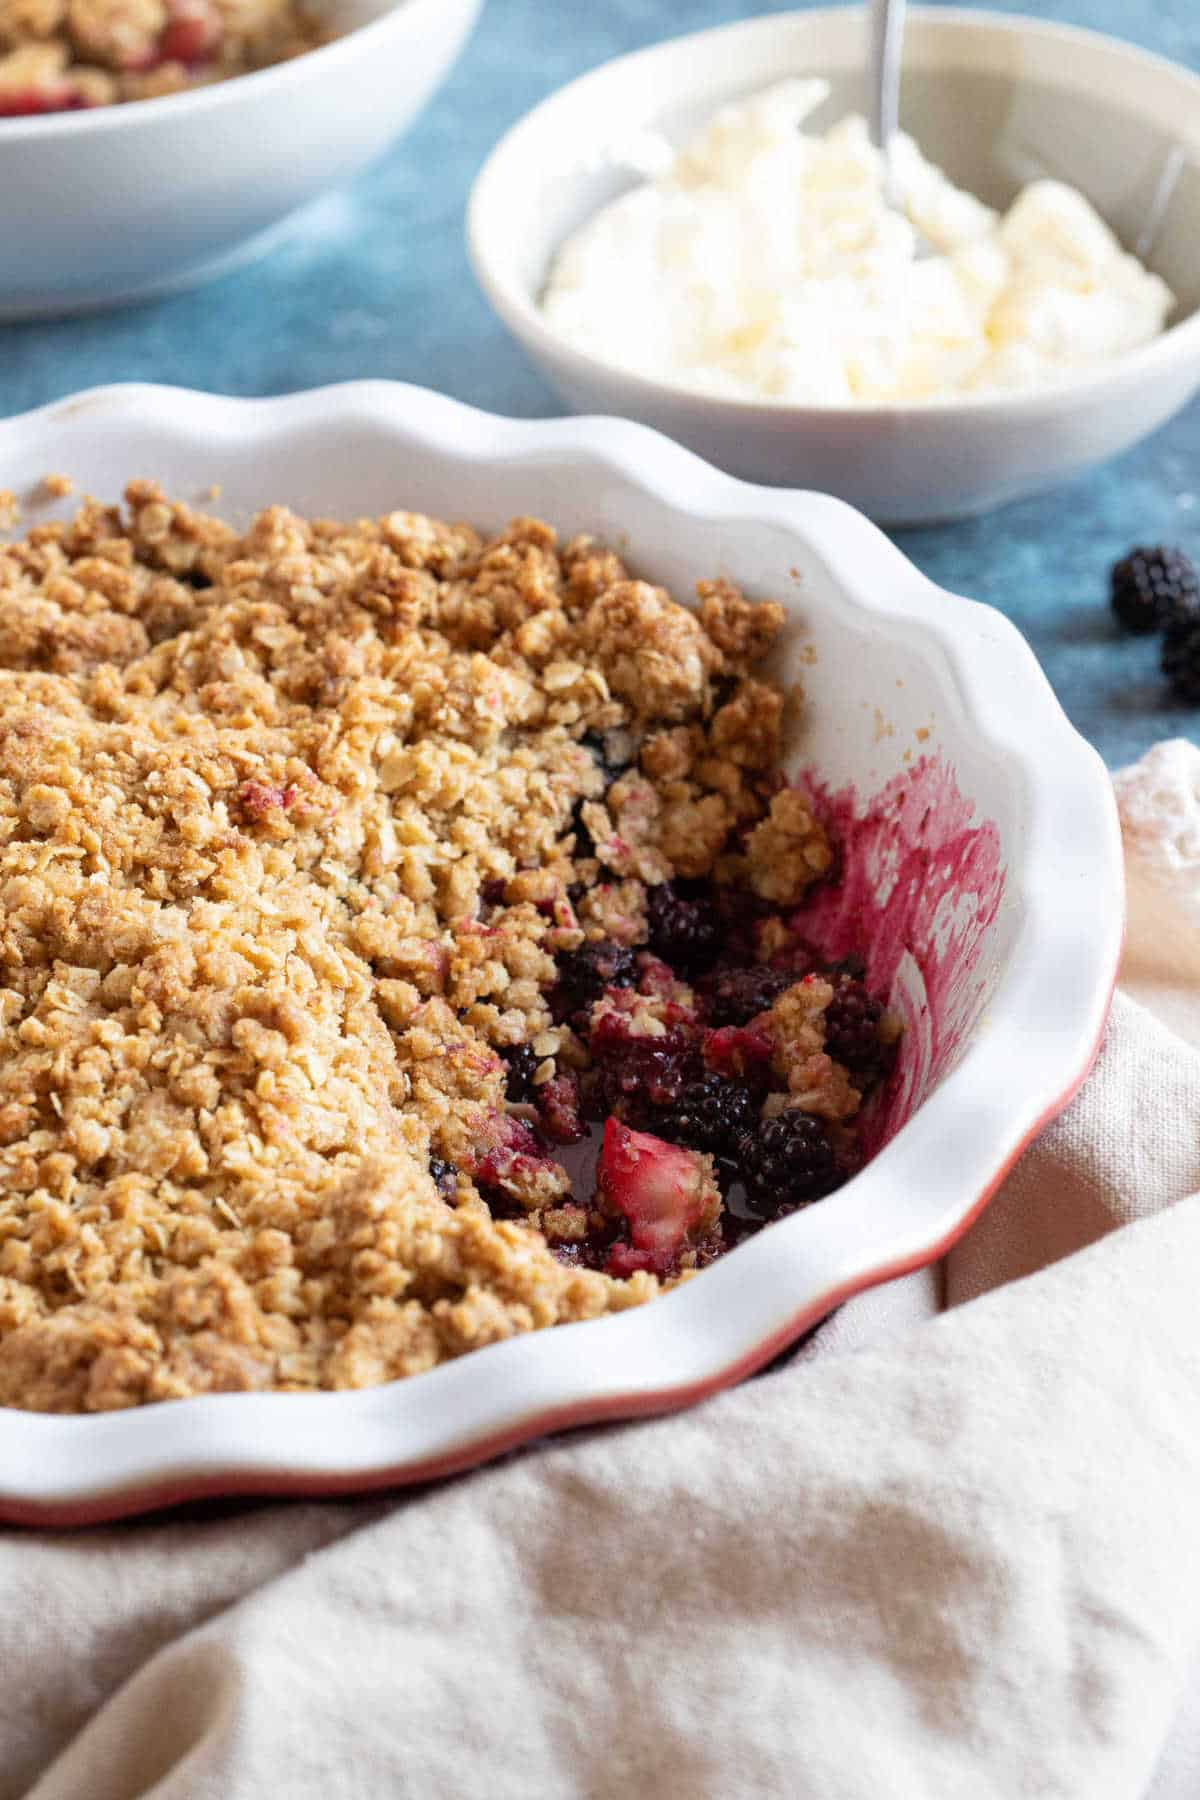 Blackberry and apple crumble with cream.